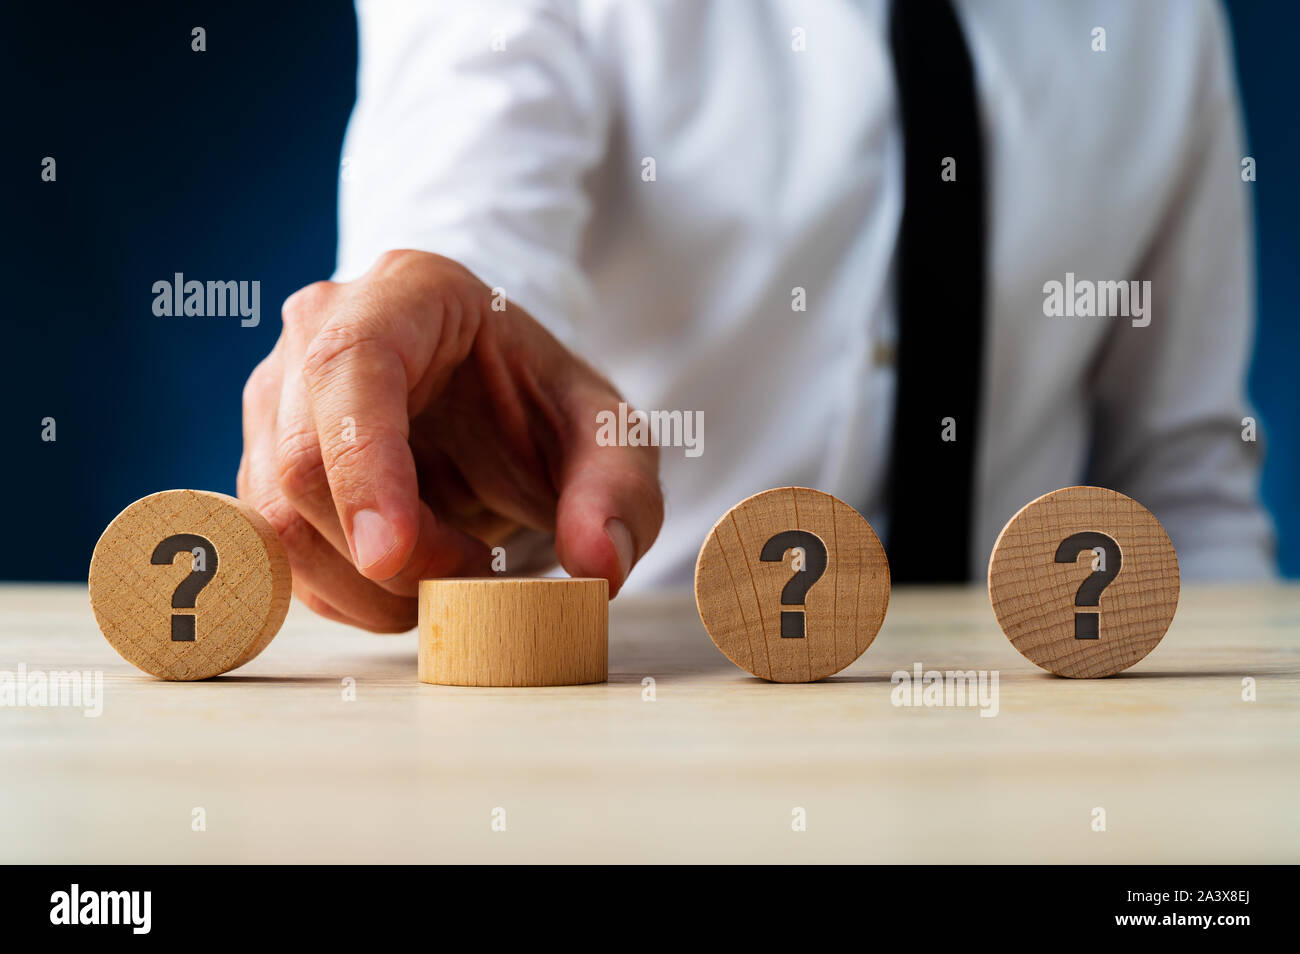 Businessman placing four wooden circles with question mark on them in a row in a conceptual image. Stock Photo